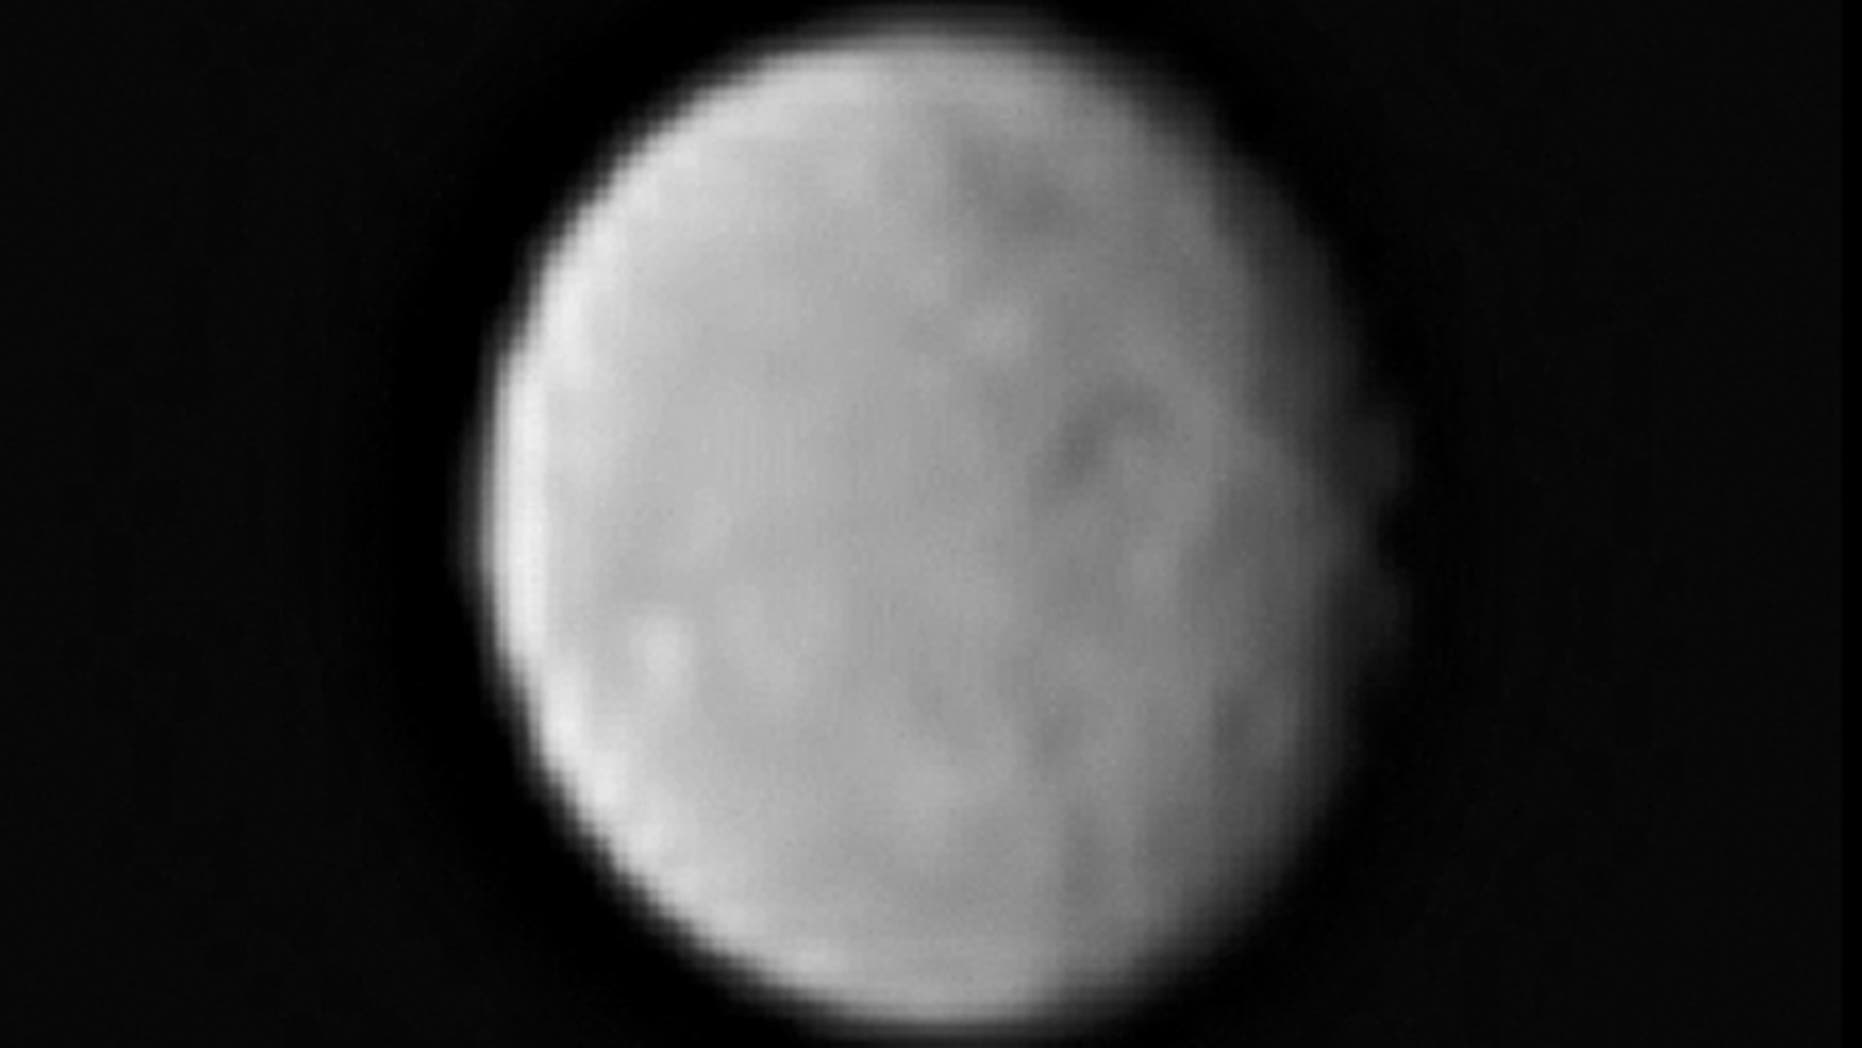 This processed image, taken Jan. 13, 2015, shows the dwarf planet Ceres as seen from the Dawn spacecraft. The image hints at craters on the surface of Ceres. Dawn's framing camera took this image at 238,000 miles from Ceres.